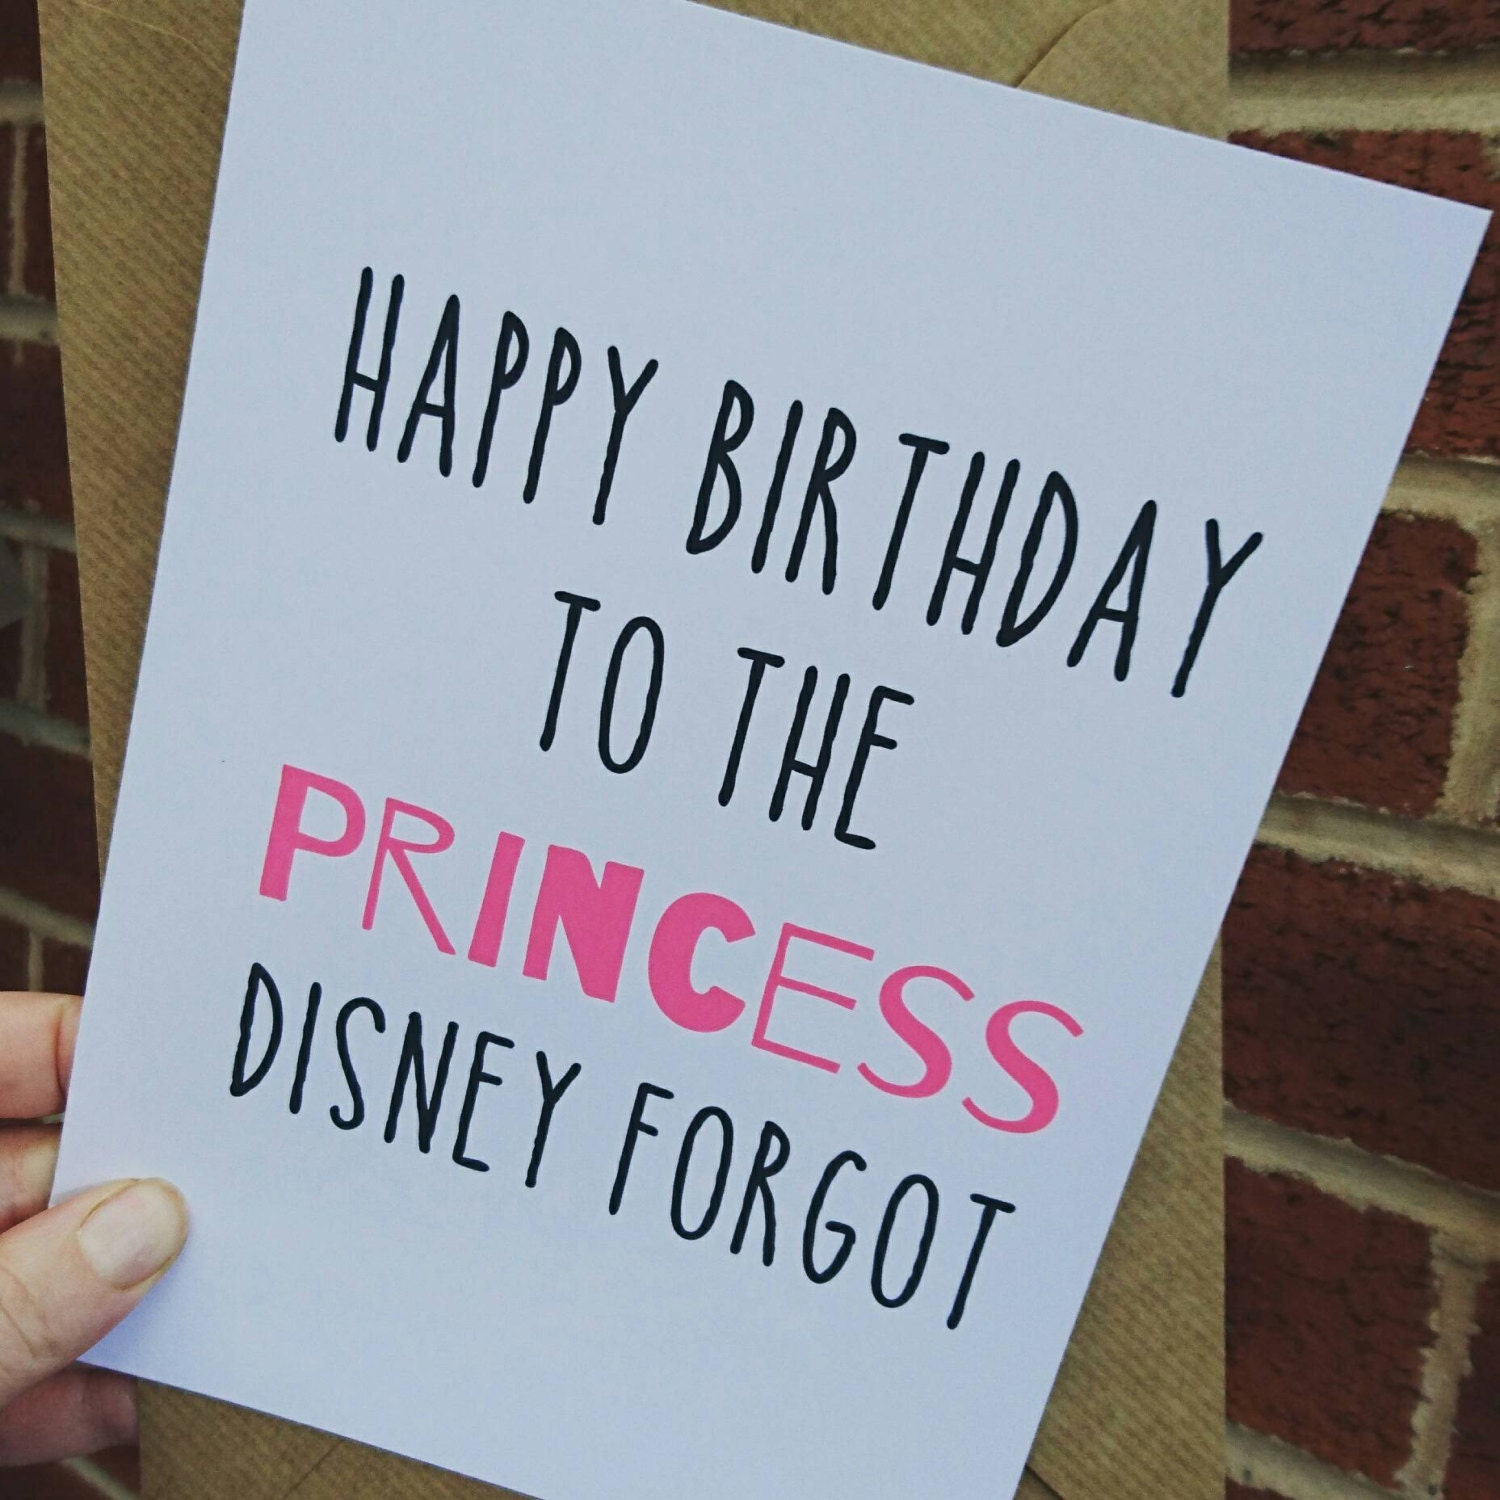 happy birthday to the princess disney forgot funny card a5